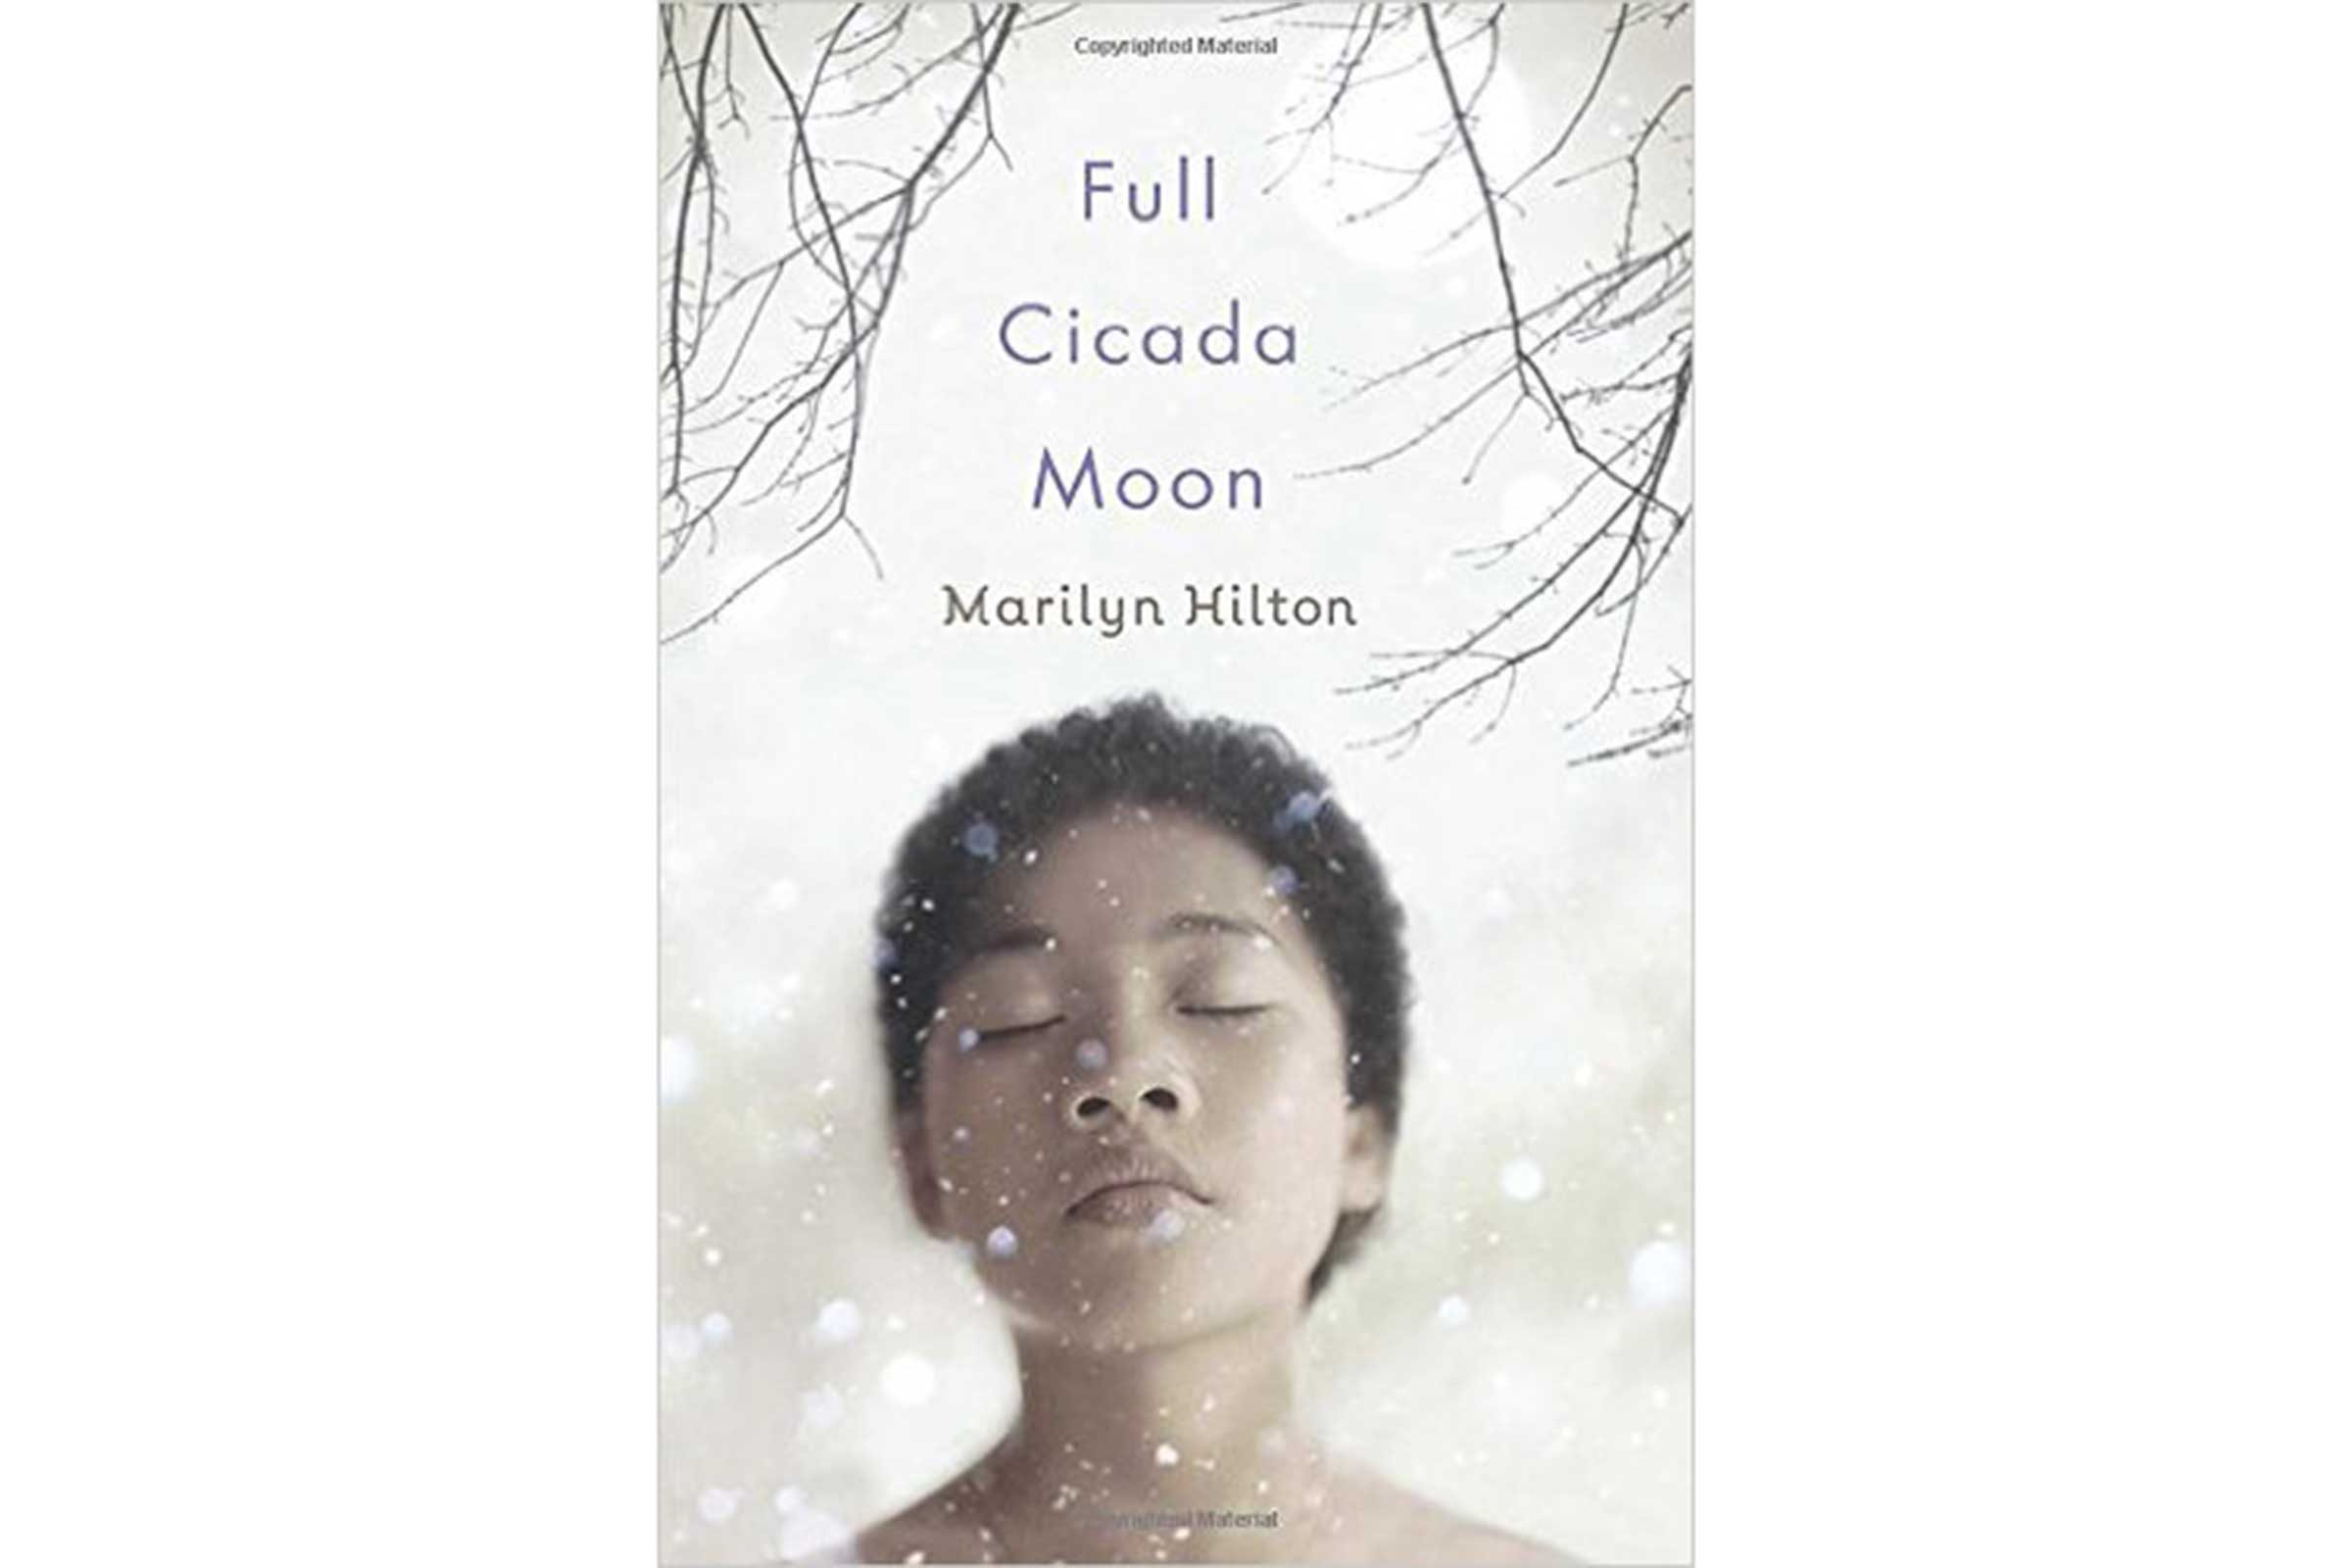 'Full Cicada Moon' by Marilyn Hilton